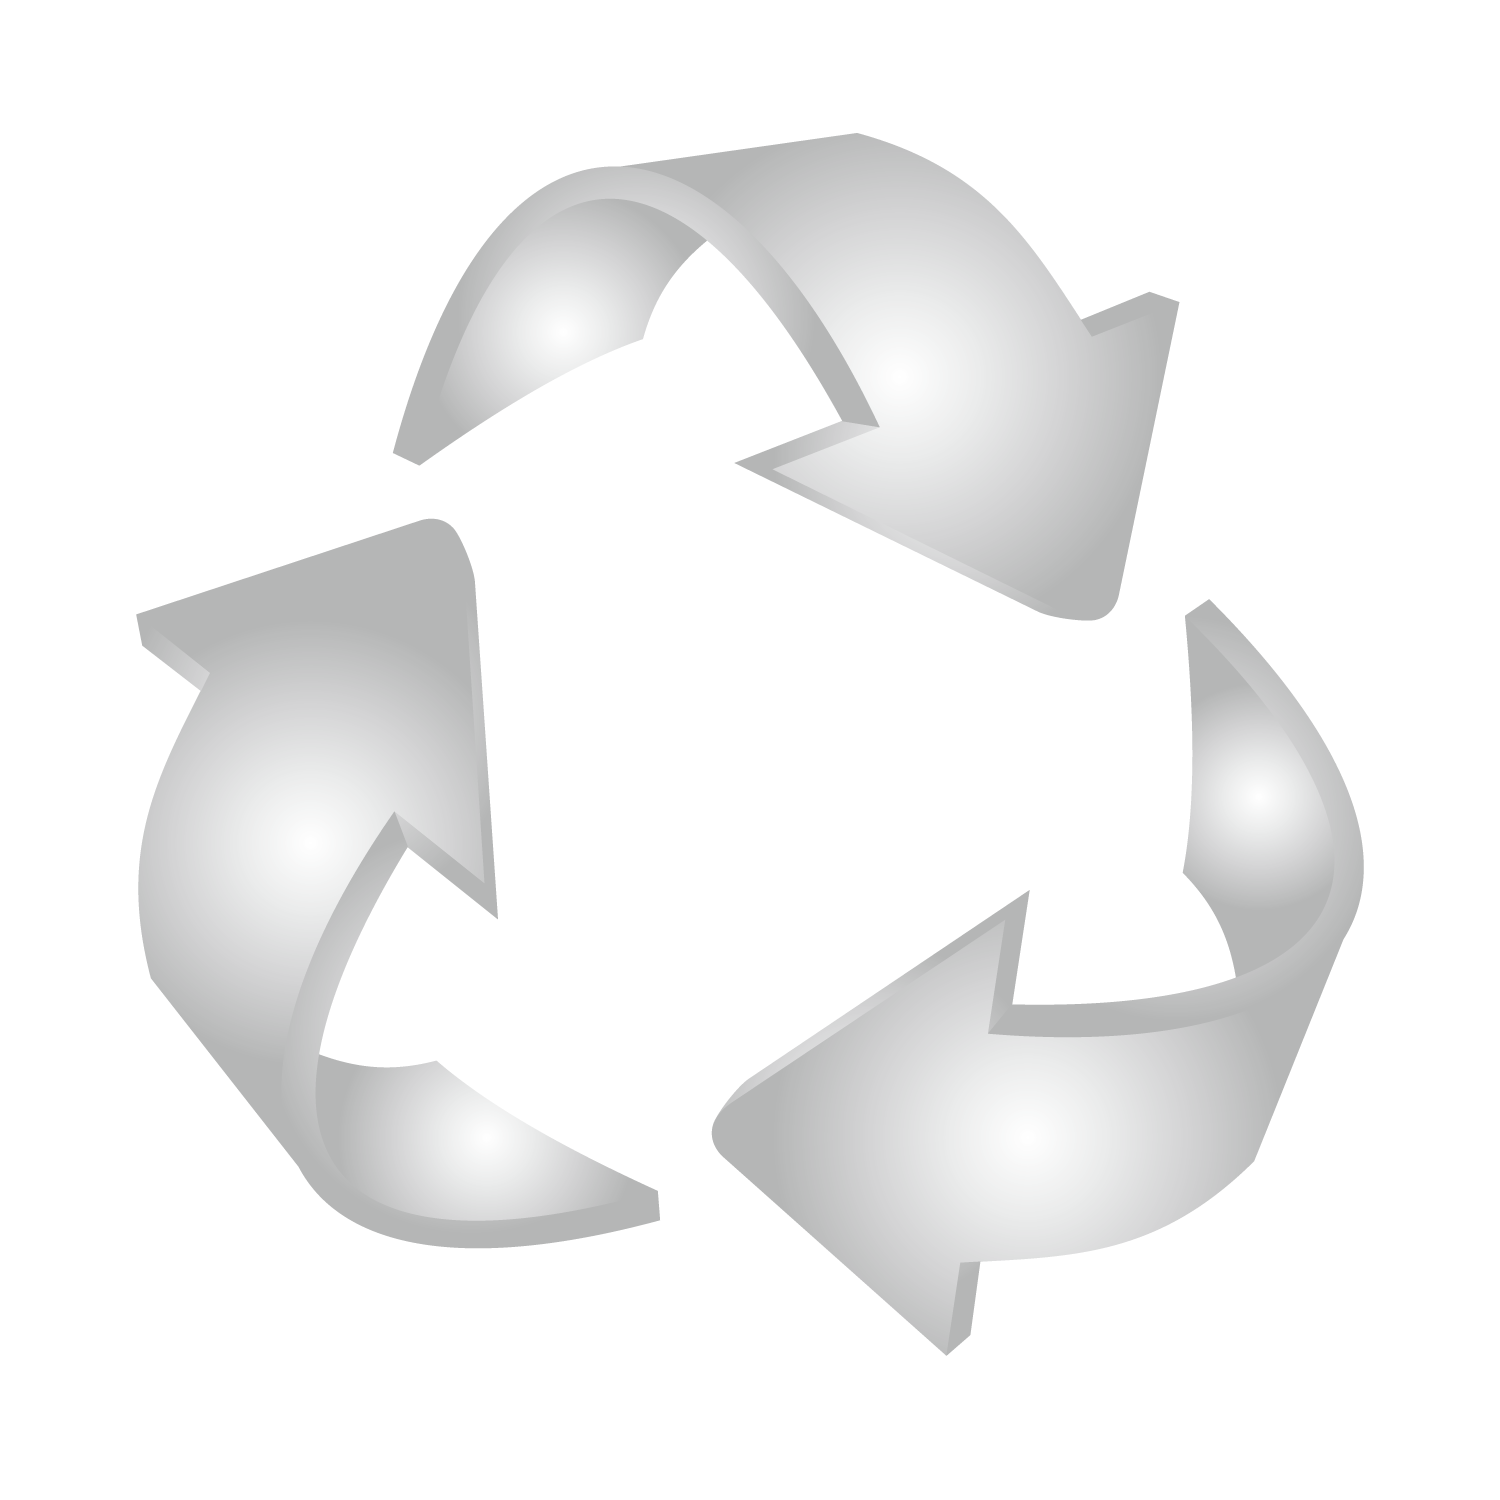 Vector Recycle Symbol Recycling Arrow Free Download Image PNG Image